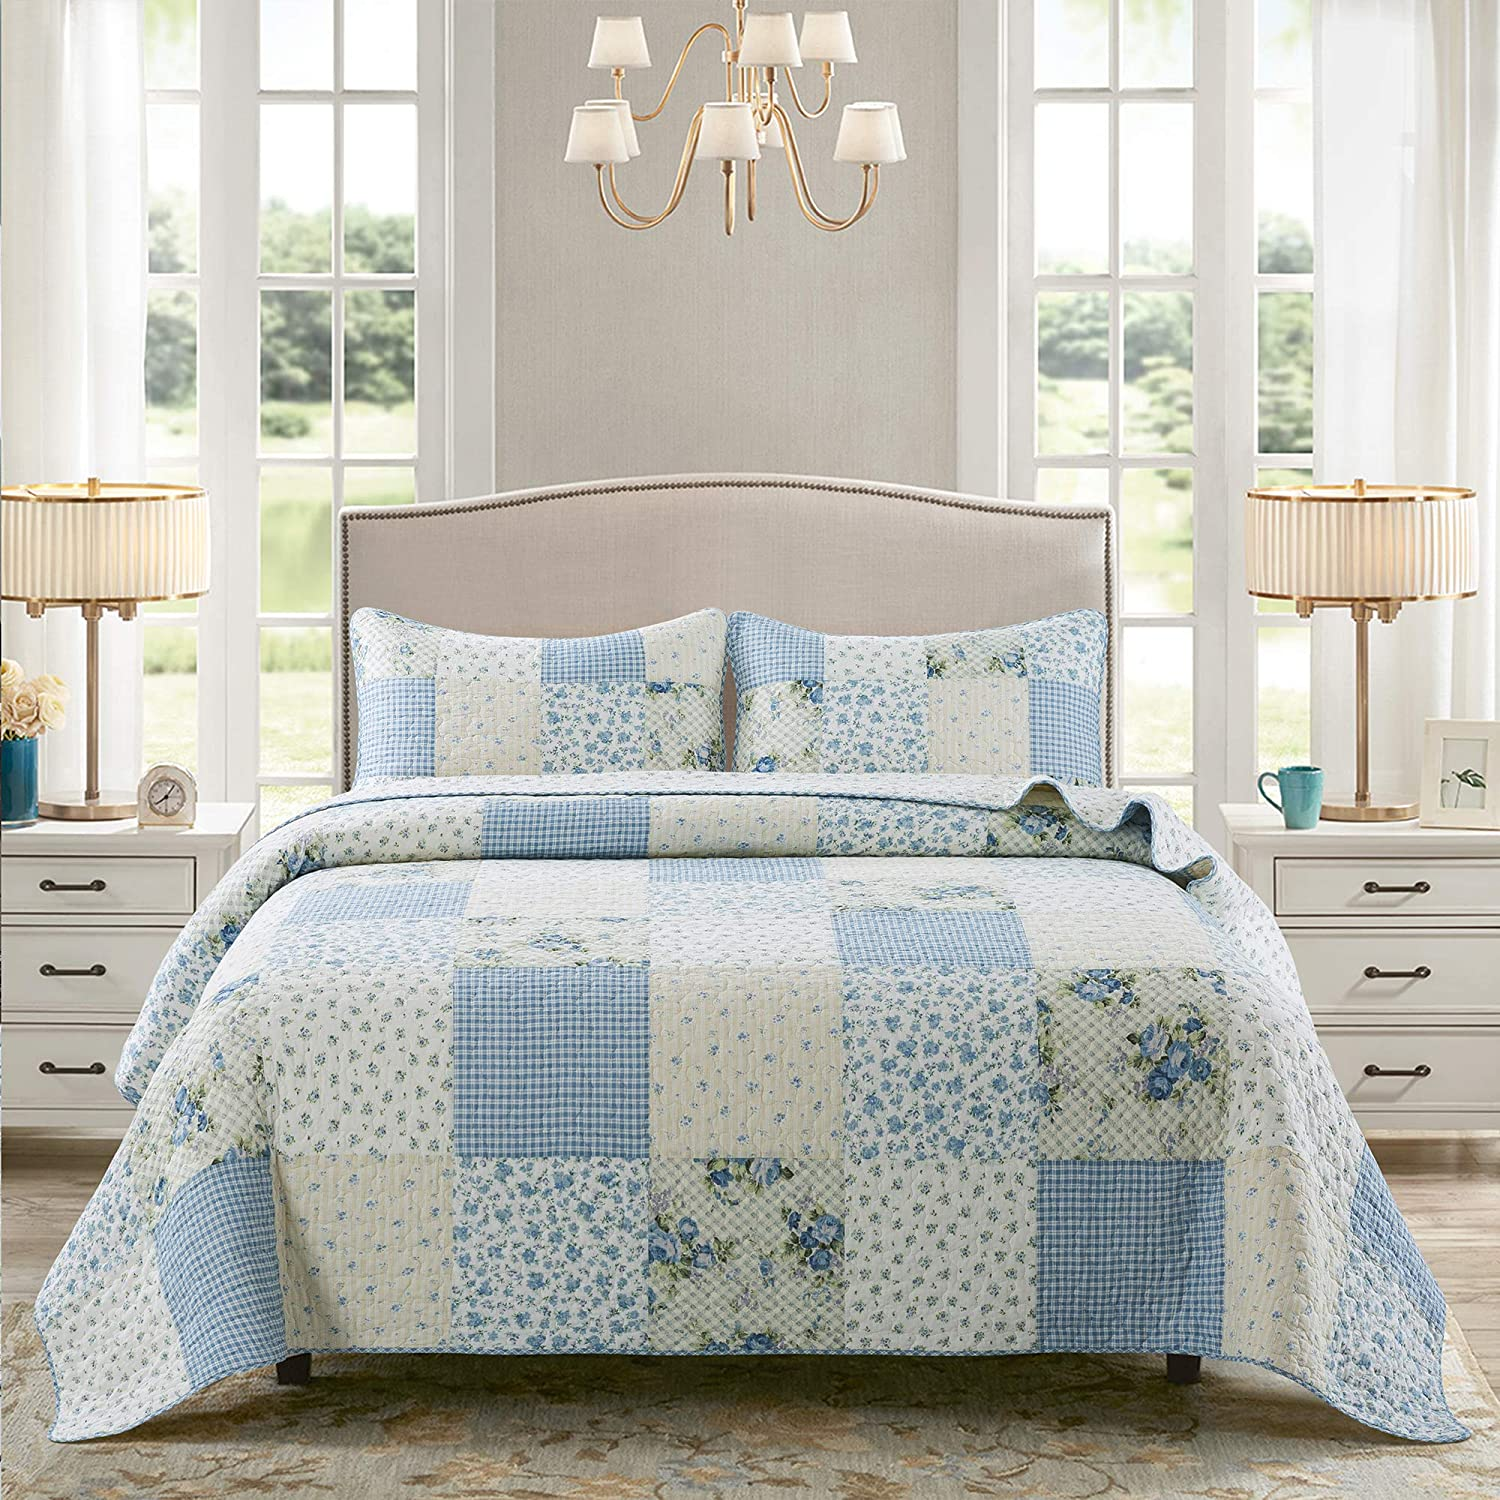 Soul /& Lane Bed of Roses 100/% Cotton 3-Piece Real Patchwork Quilt Set with 2 Sham Pre-Washed Reversible Machine Washable Lightweight Bedspread Coverlet Queen